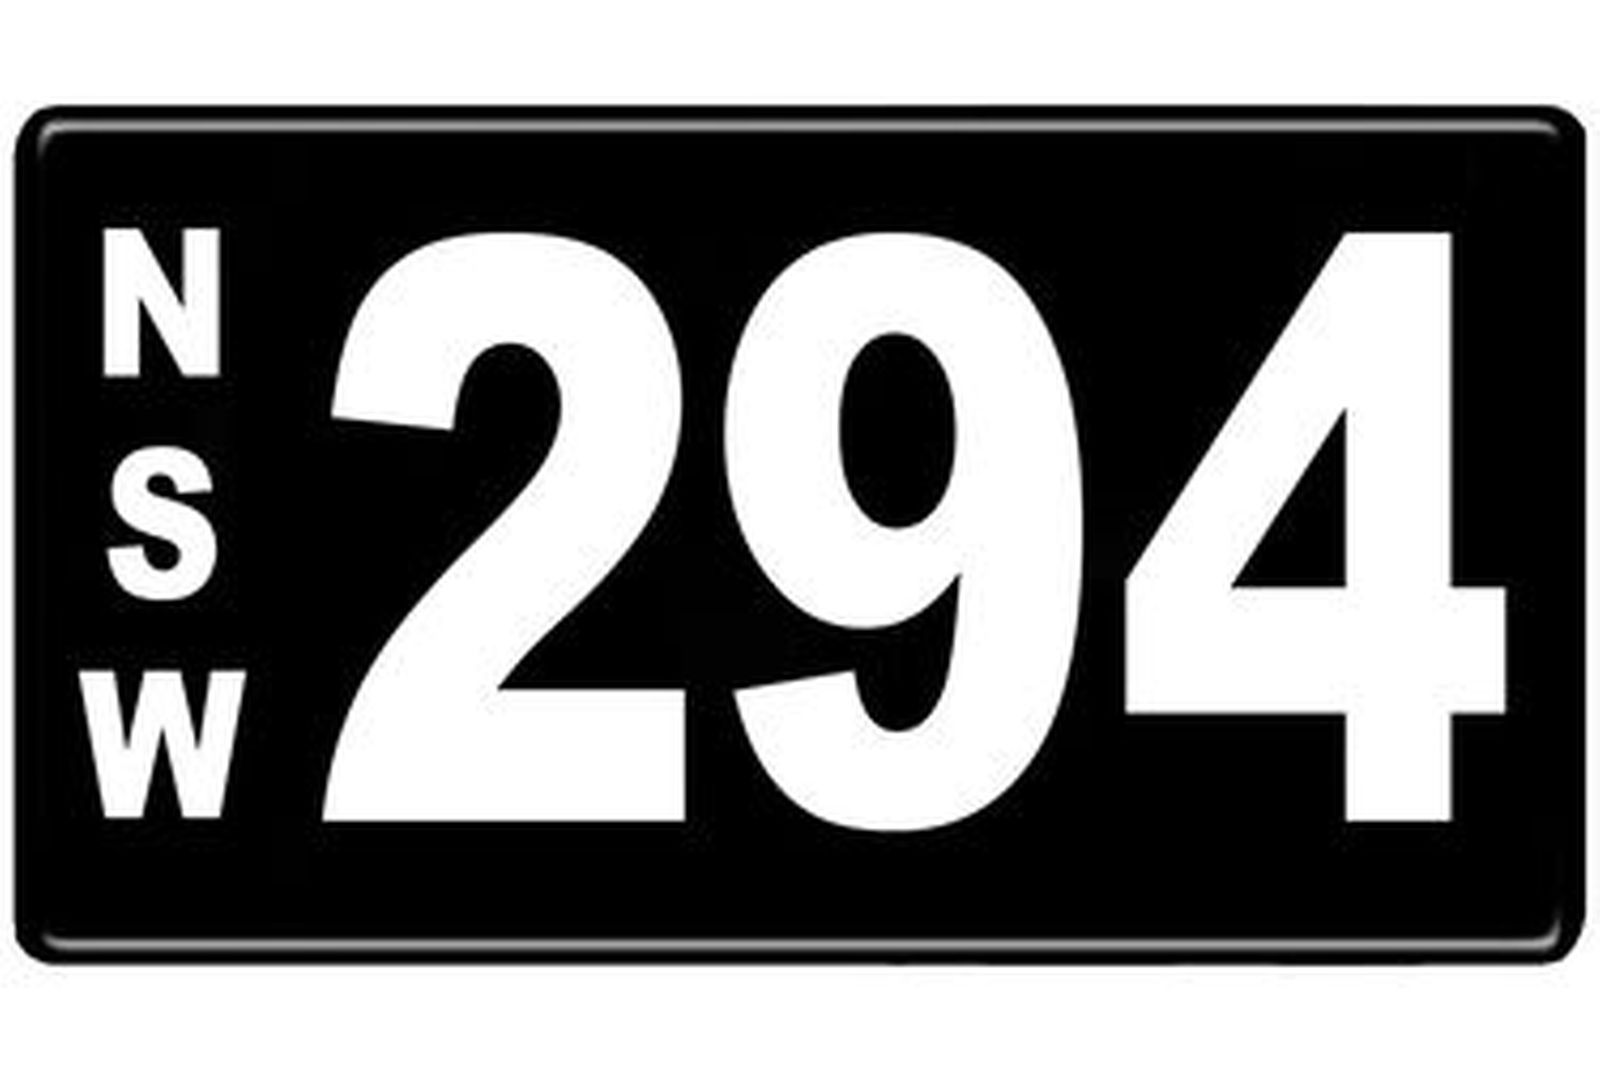 Number Plates - NSW Numerical Number Plates '294'